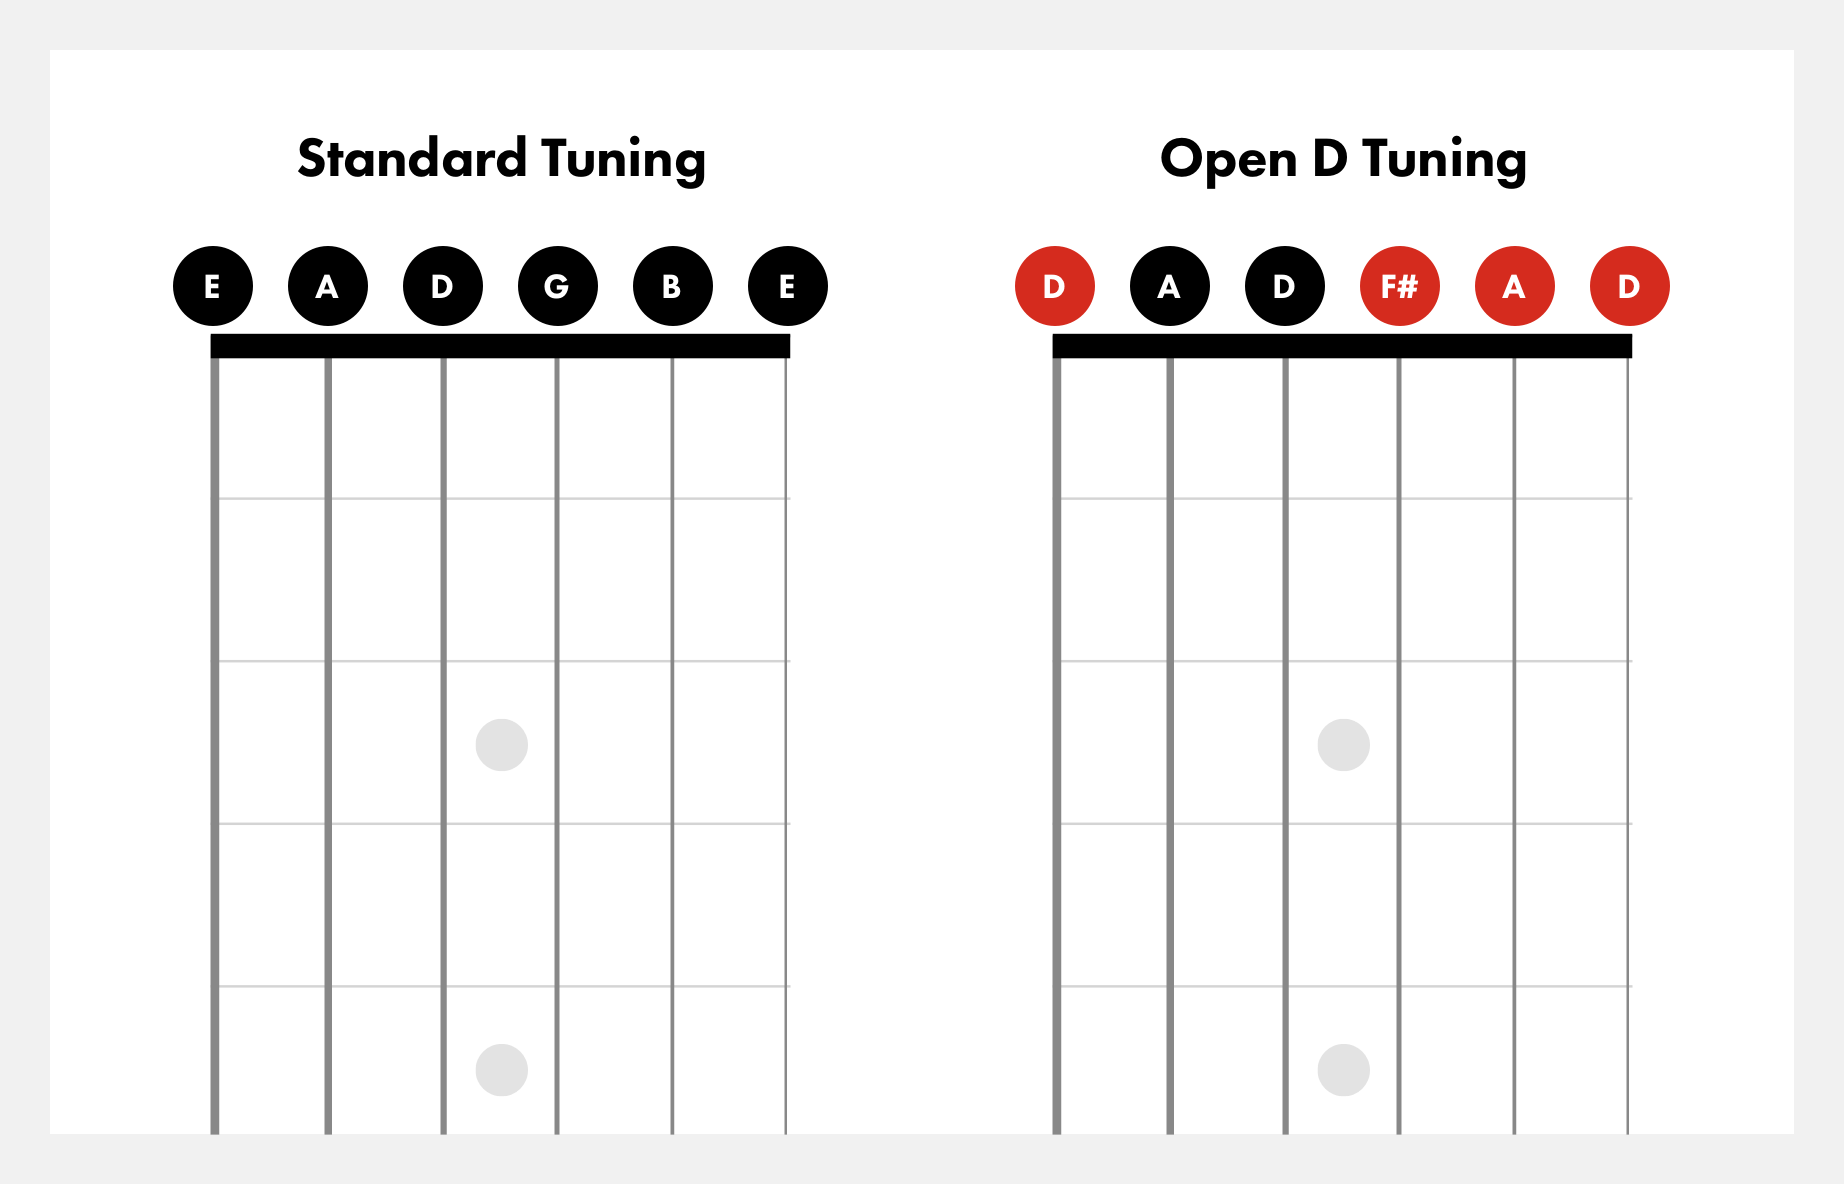 open-d-vs-standard-tuning@2x